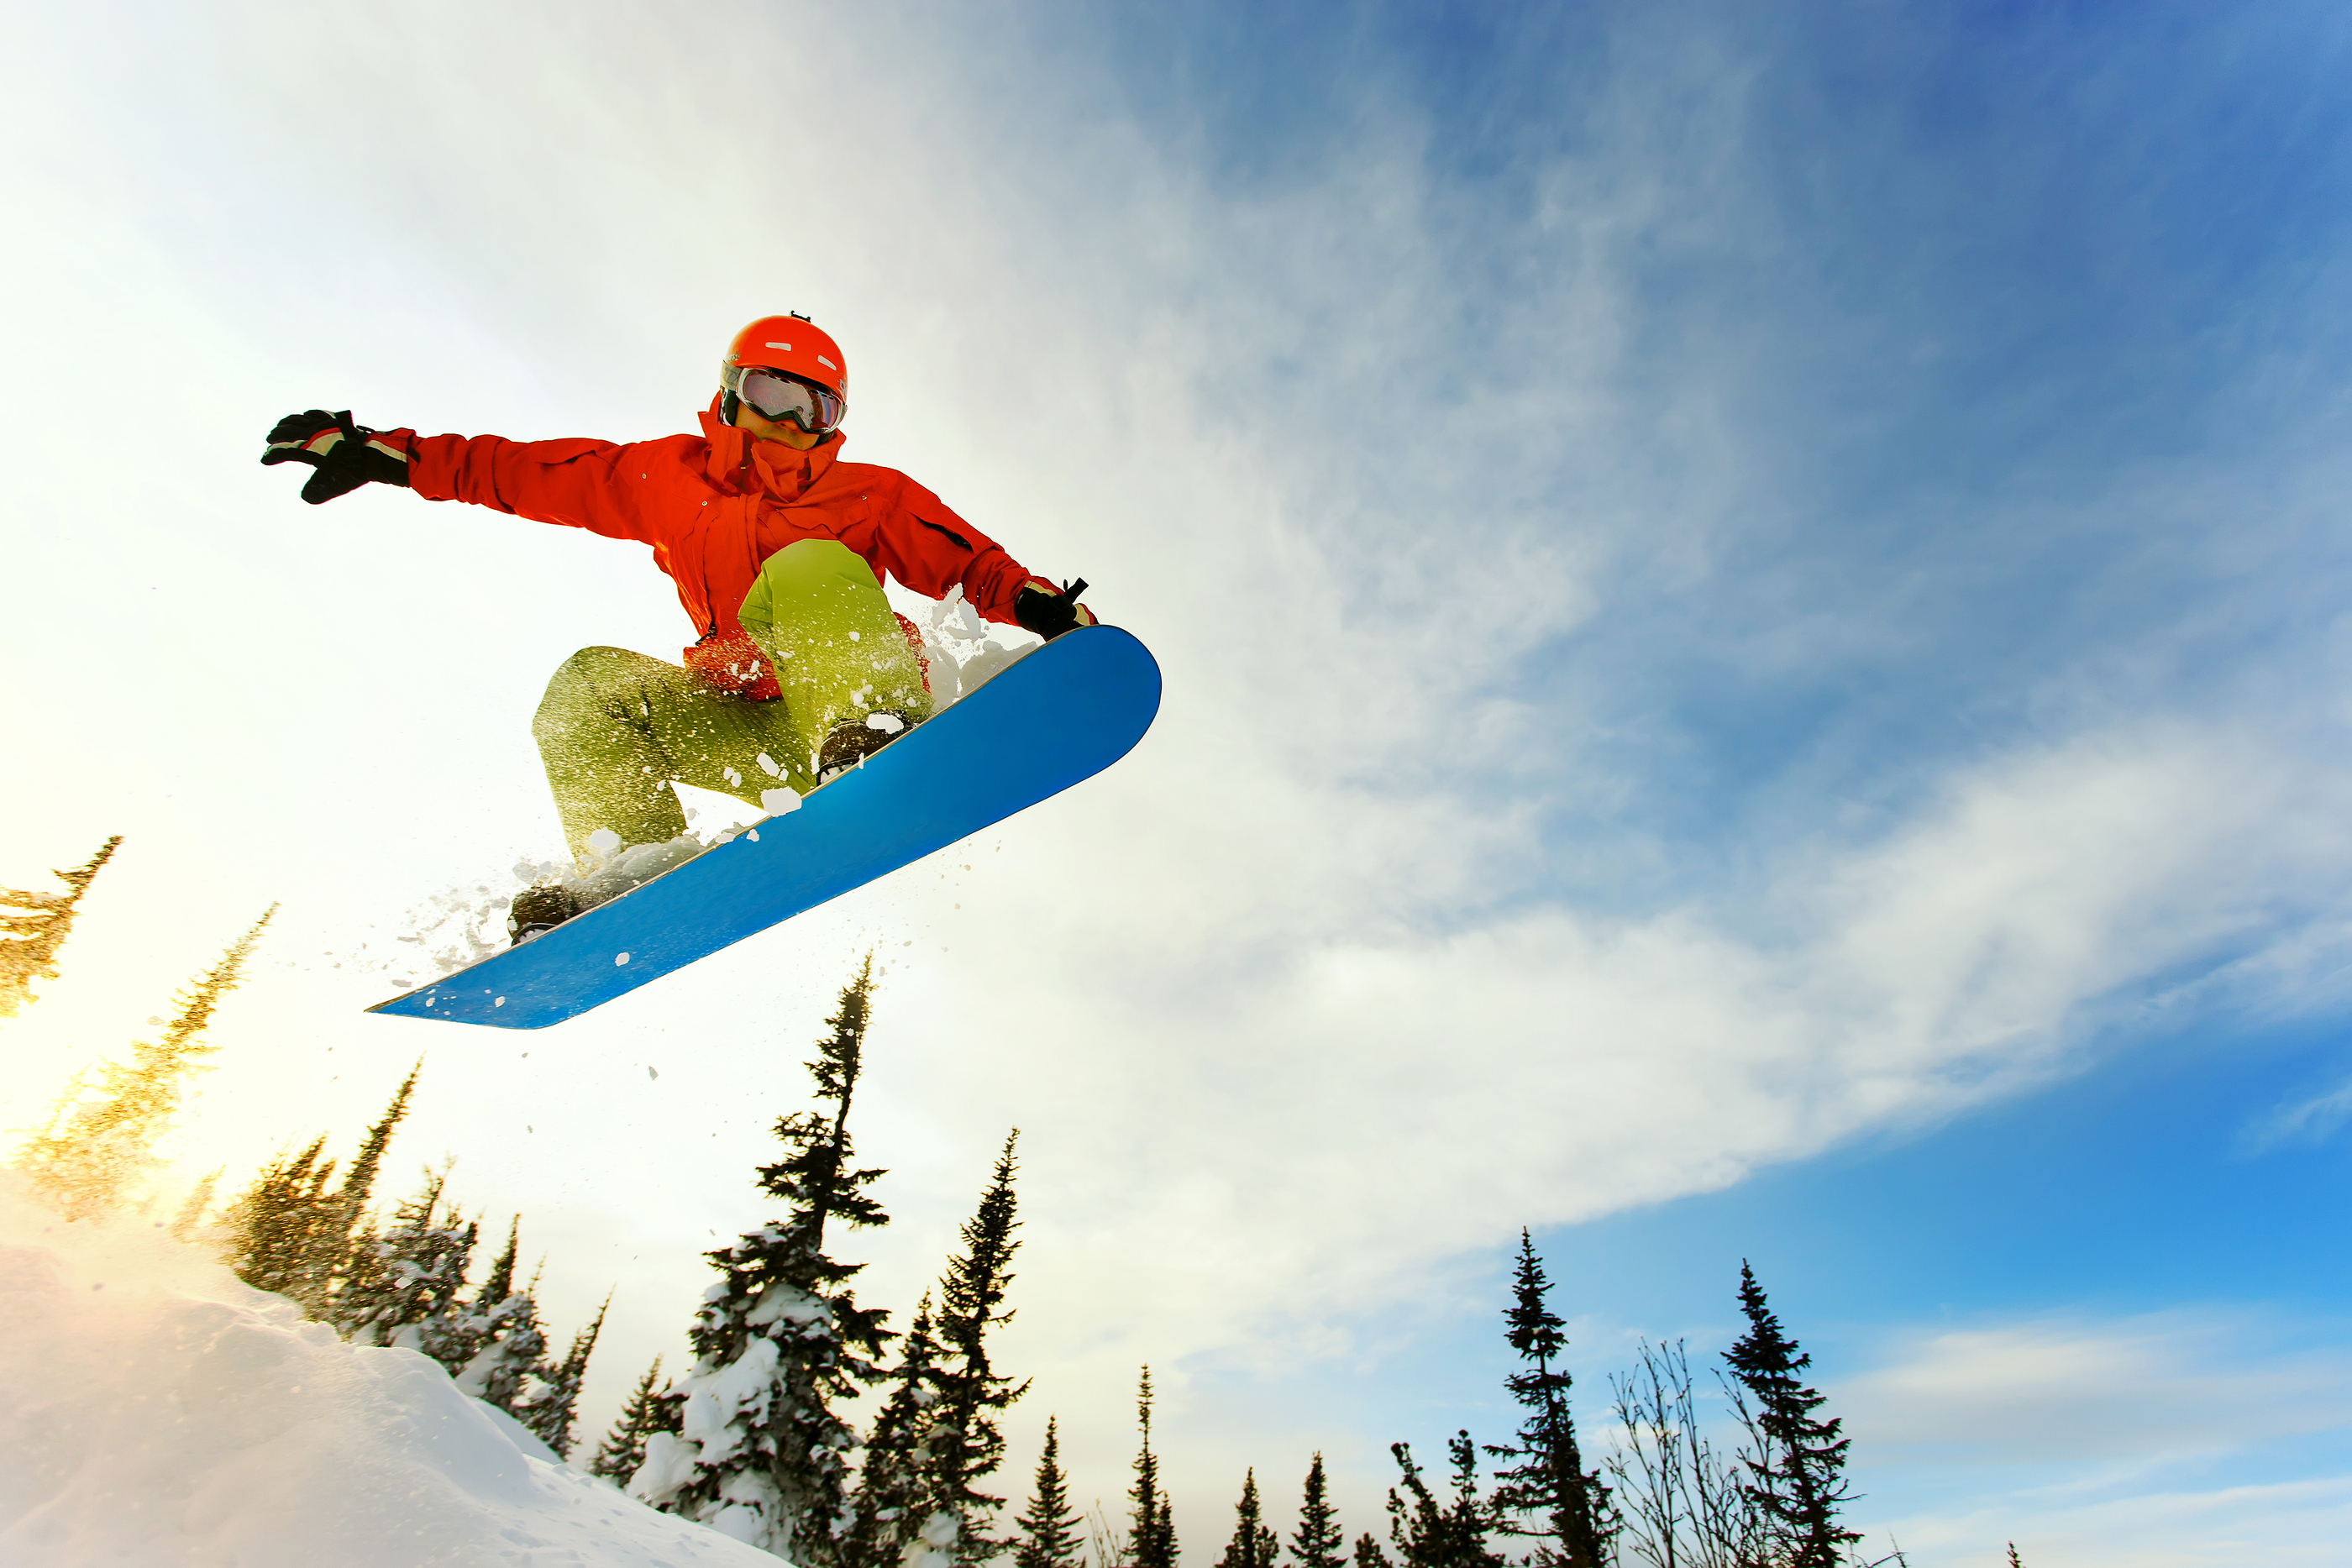 Snowboarder jumping through air with deep blue sky in background.jpg